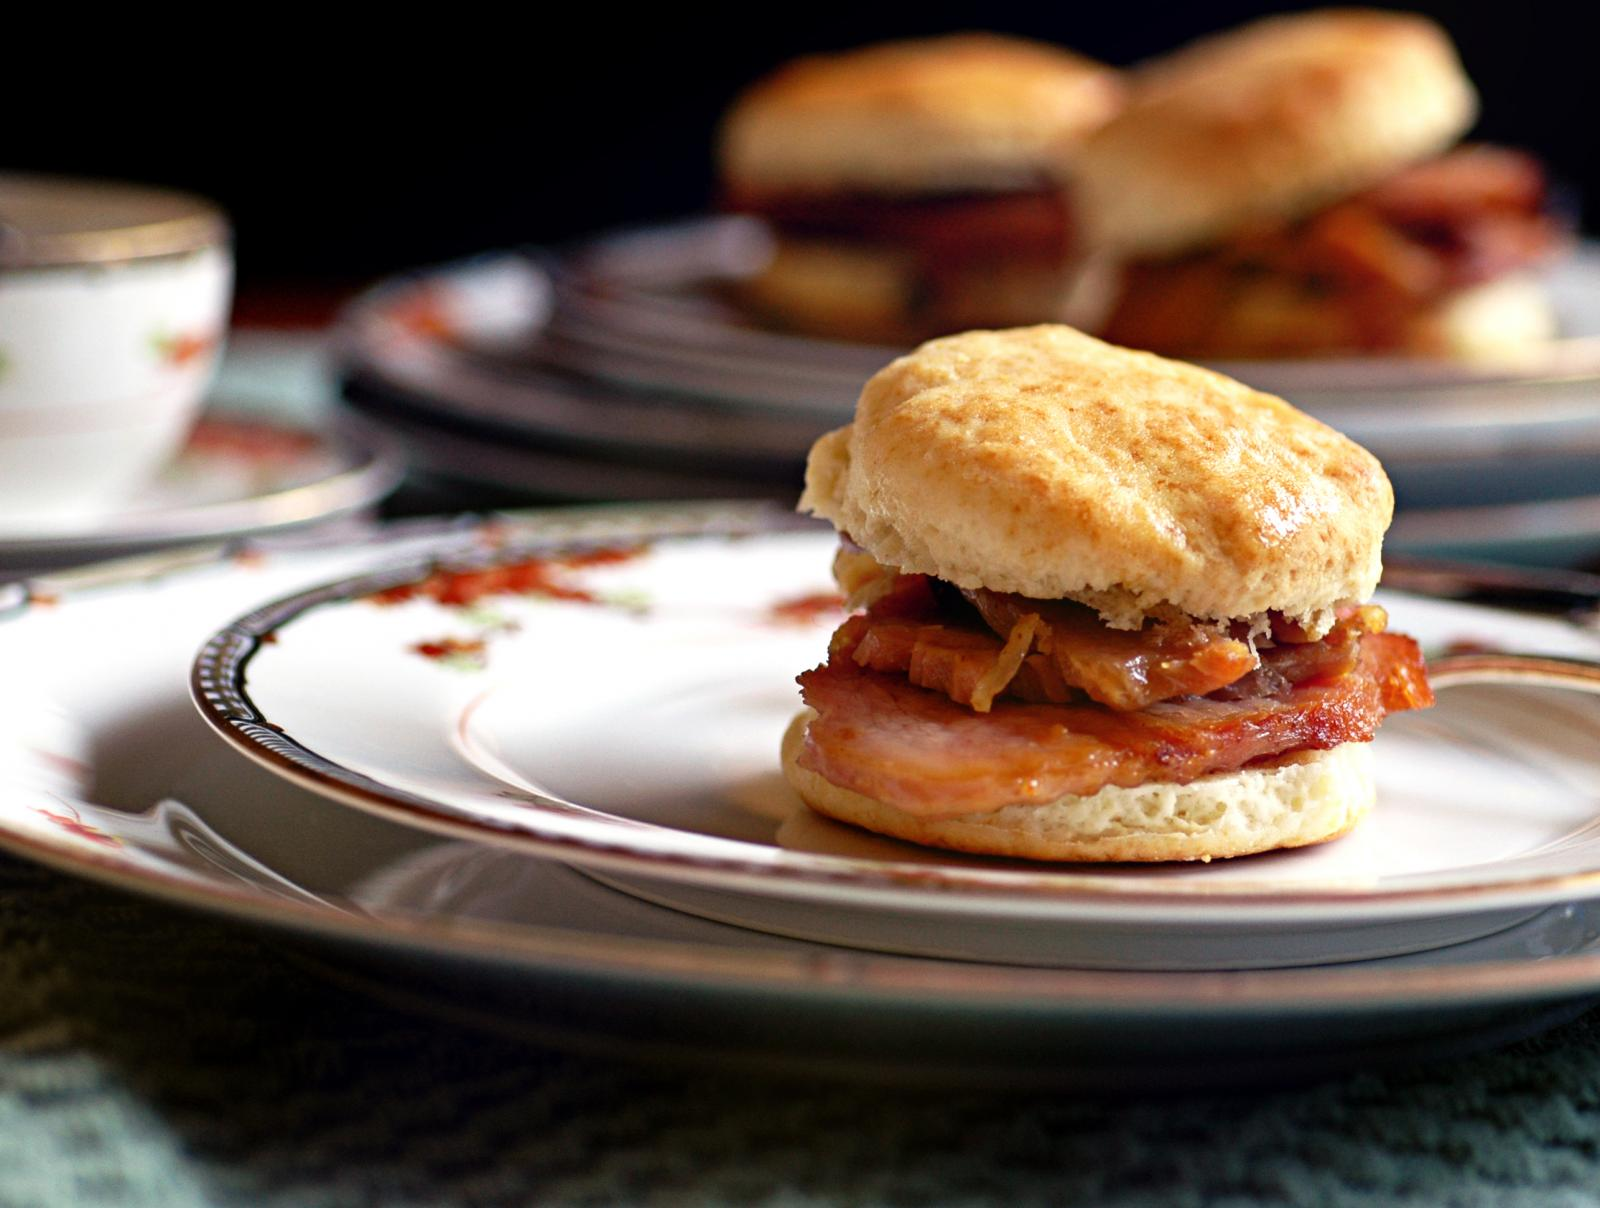 Fresh buttermilk biscuits with country ham on plates